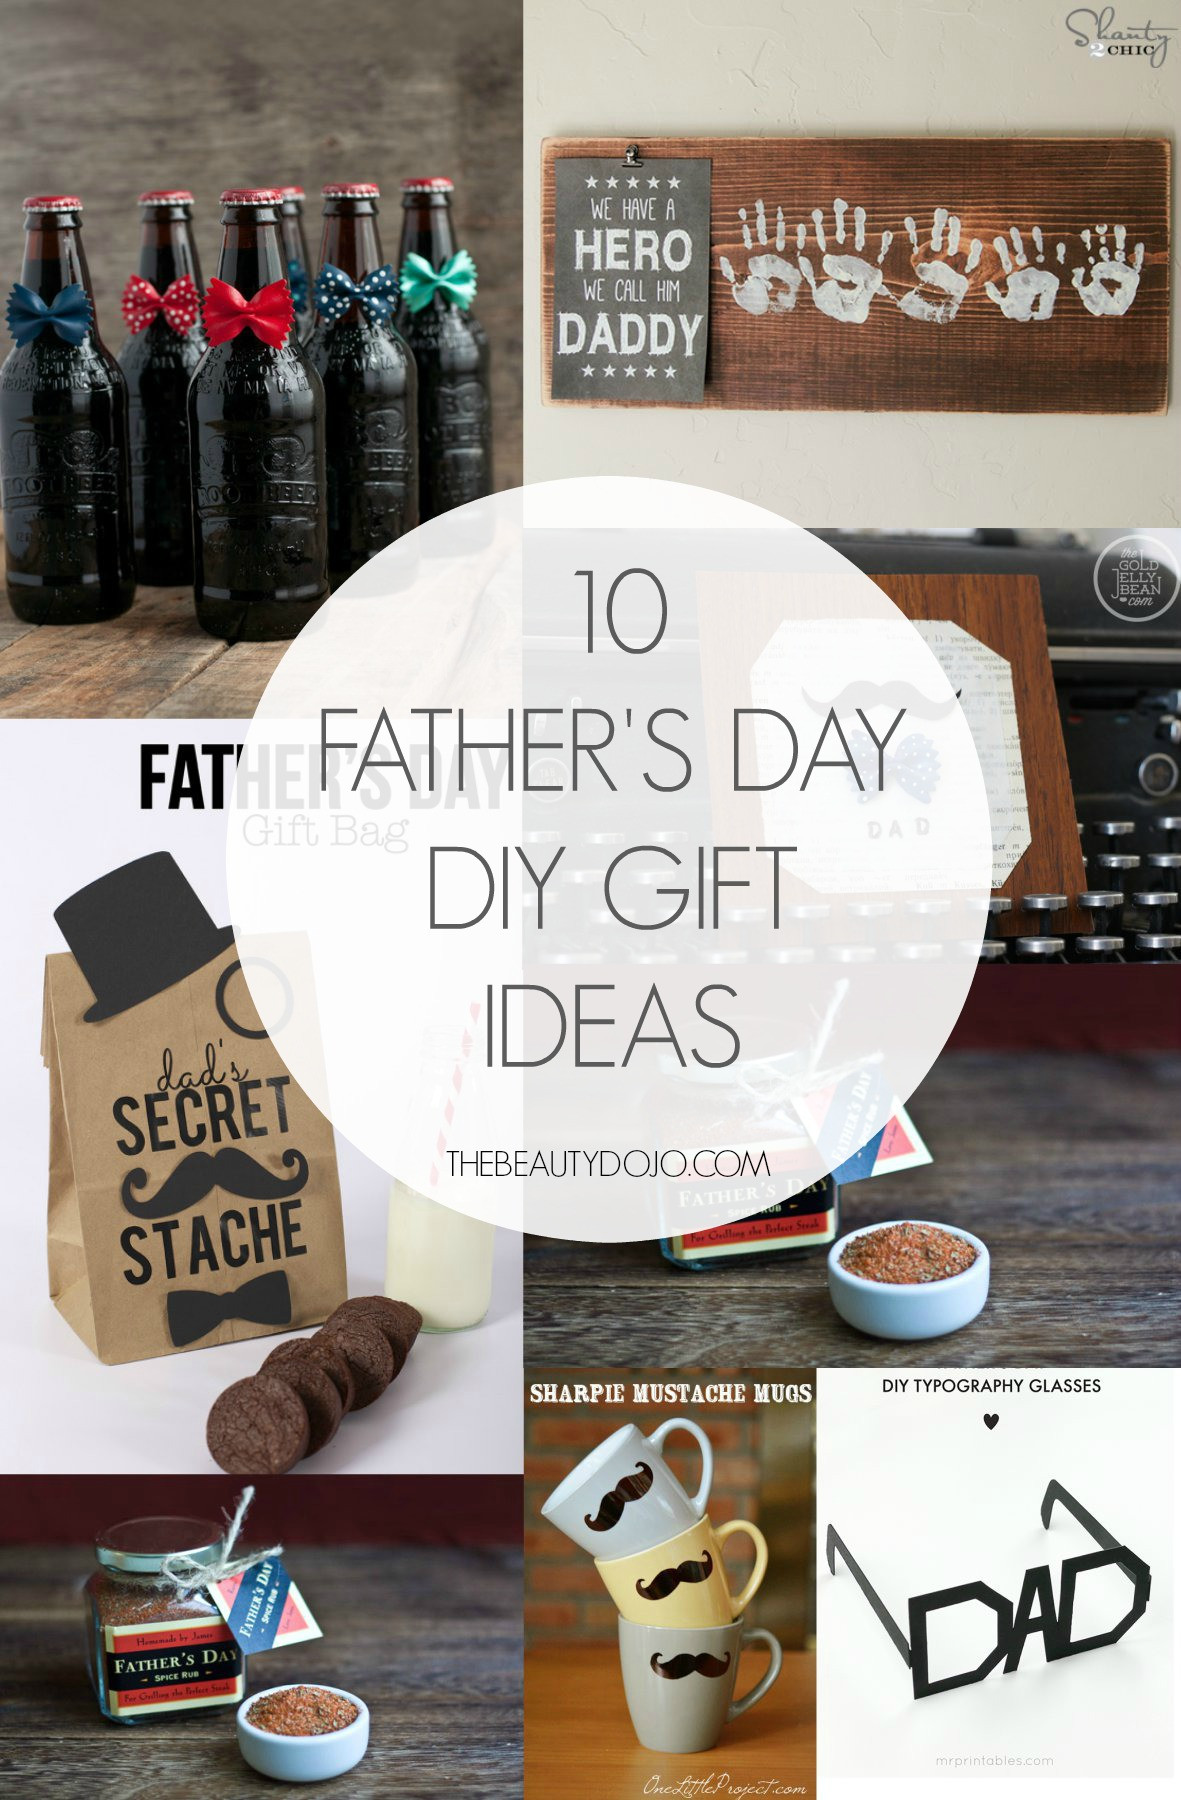 Best ideas about Fathers Day Gift DIY . Save or Pin 10 Father s Day DIY Gift Ideas The Beautydojo Now.